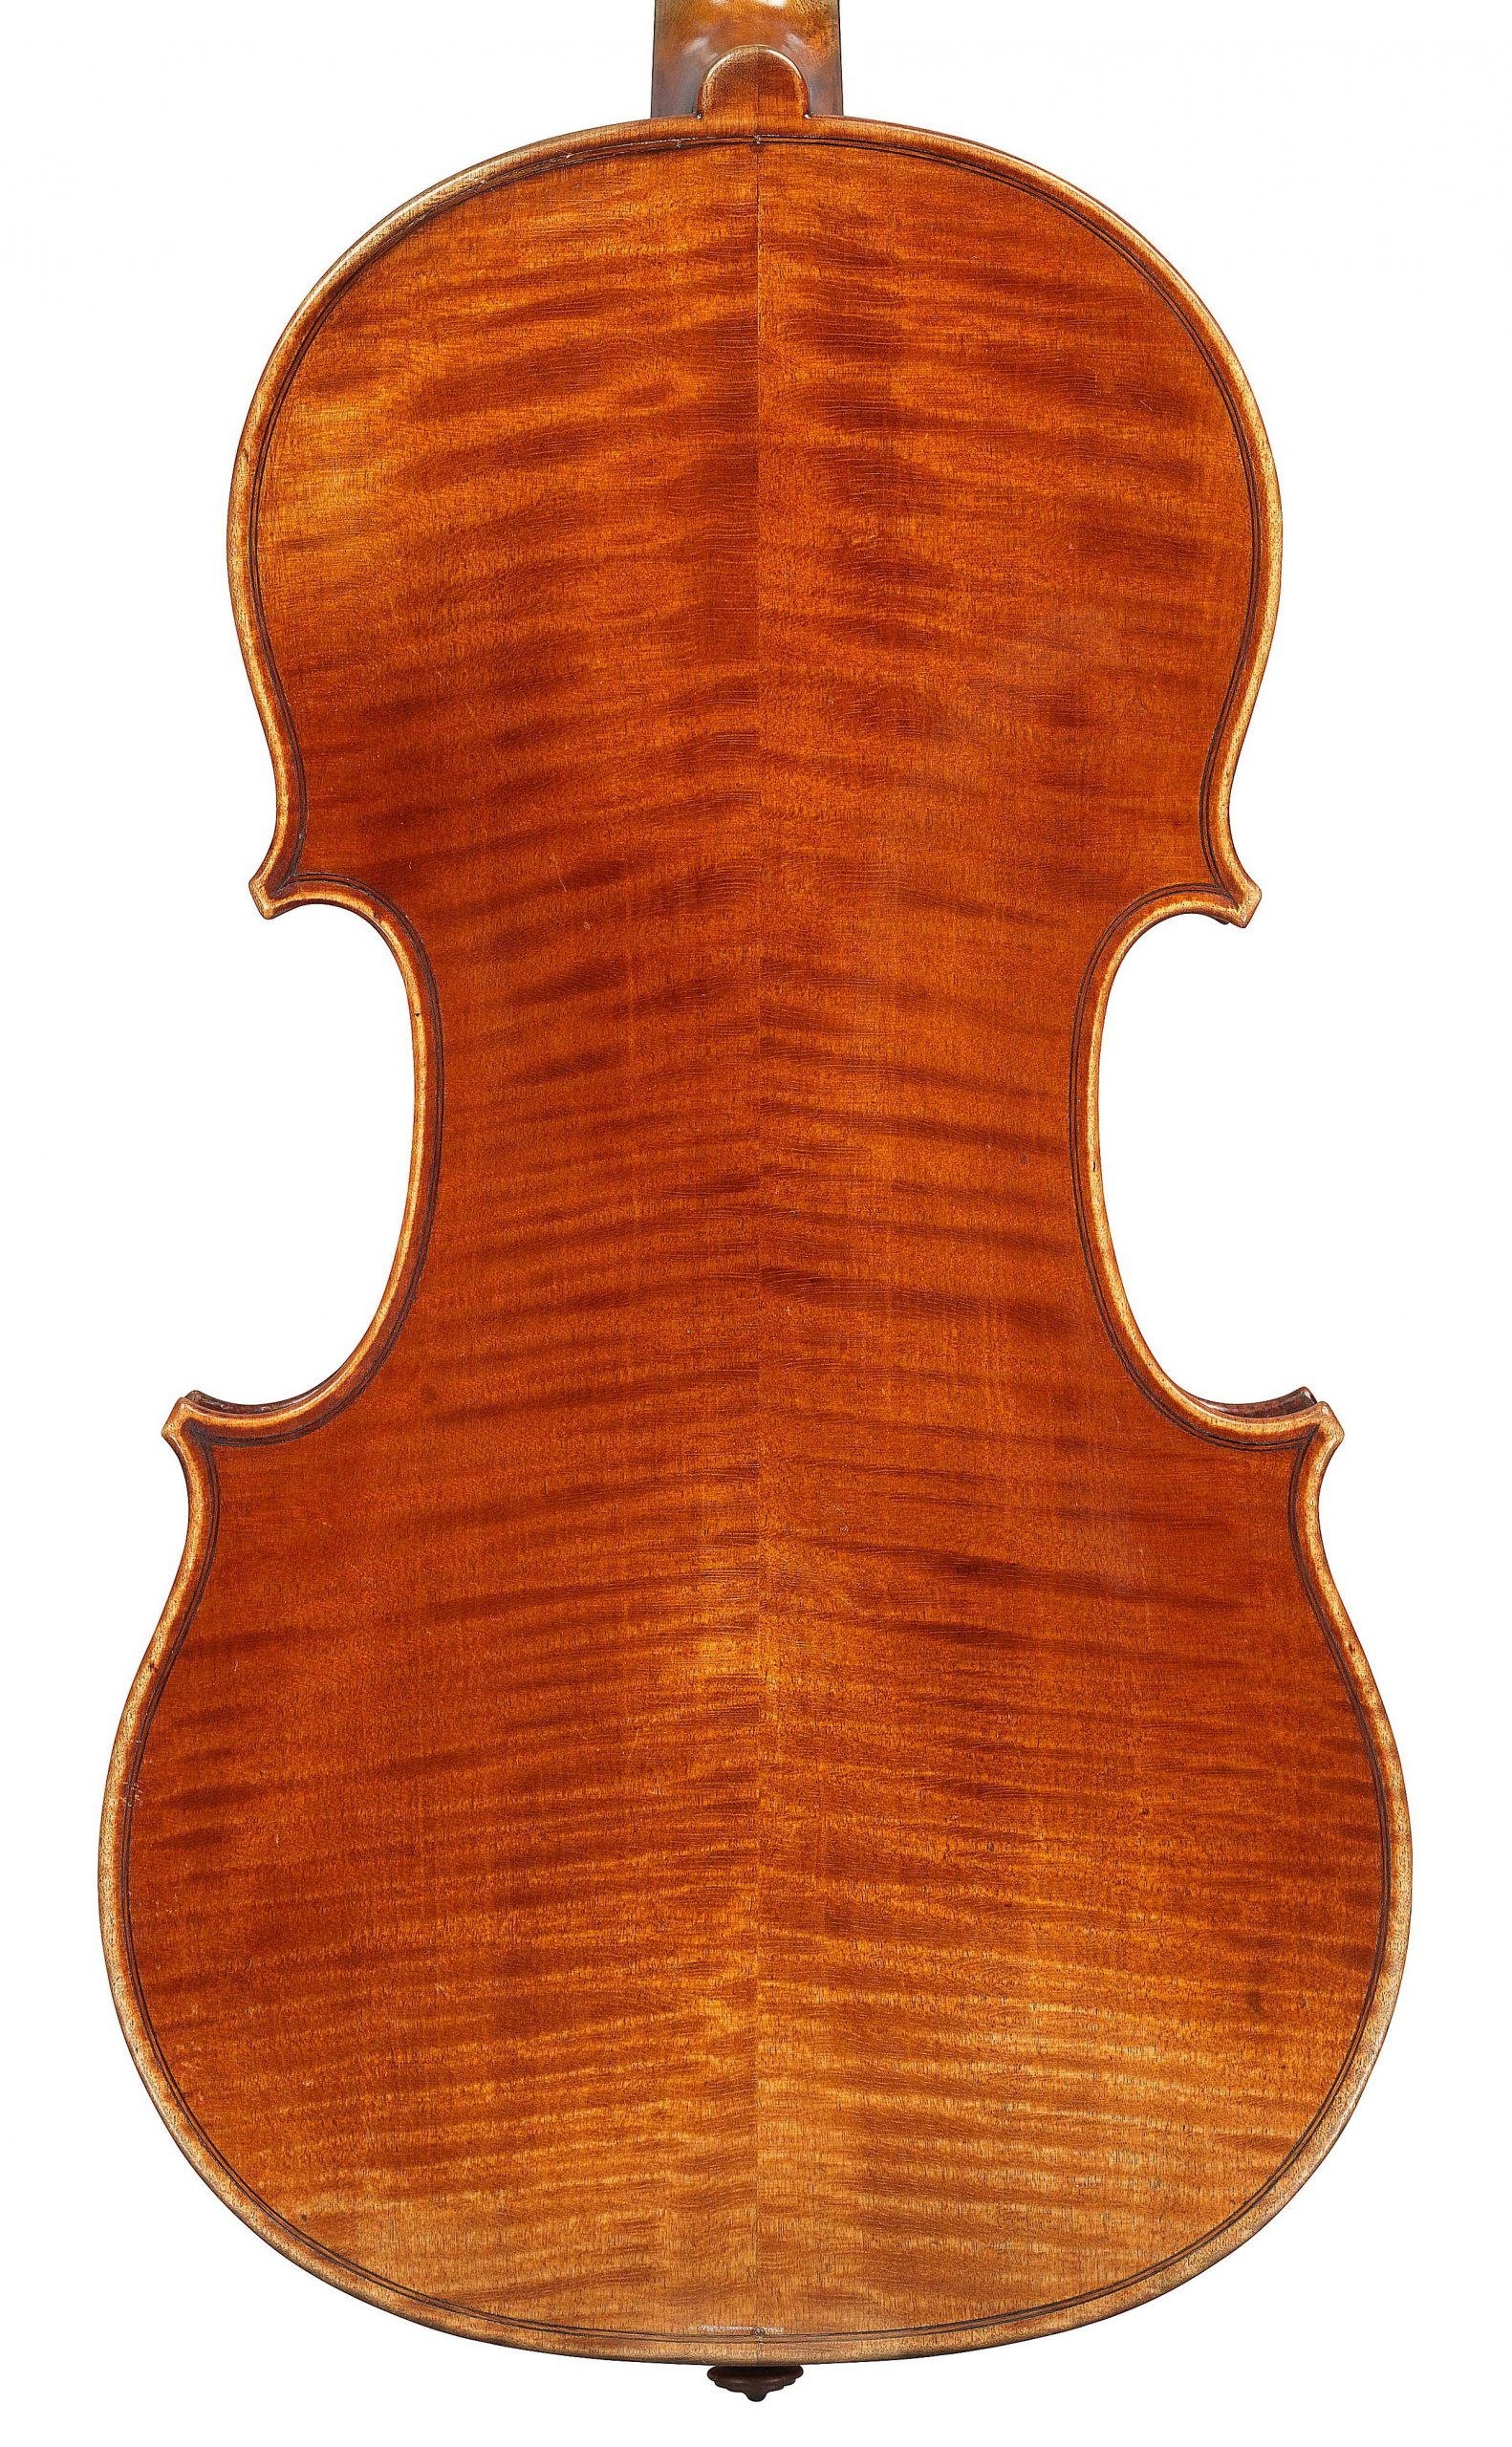 Back of violin by JB Vuillaume, ex-Sin, dated 1863, exhibited by Ingles & Hayday at Sotheby's in 2012